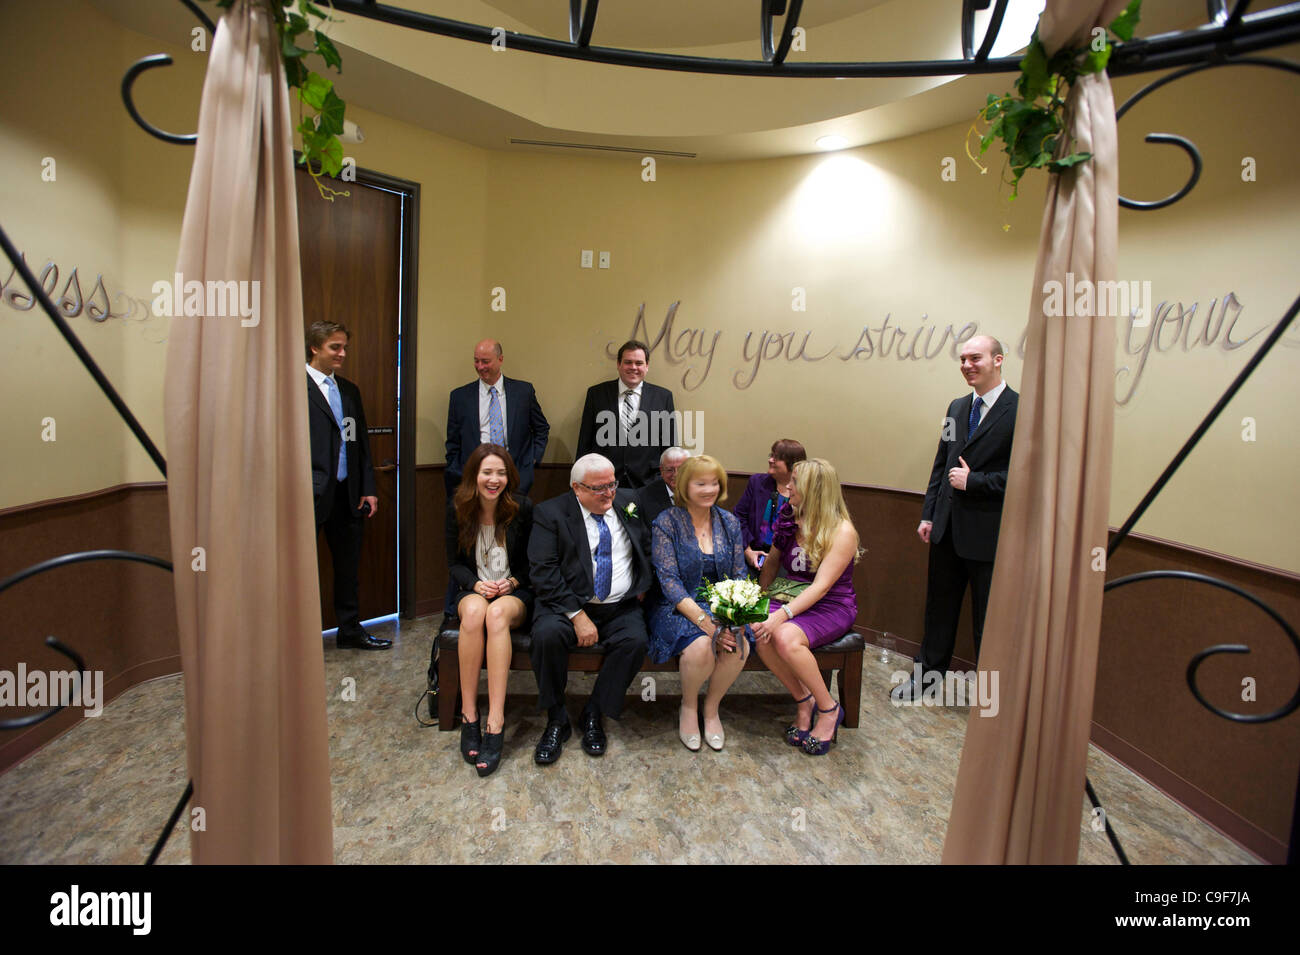 Elizabeth field is married to harold at the orange county stock photo royalty free image - Orange county clerk s office ...